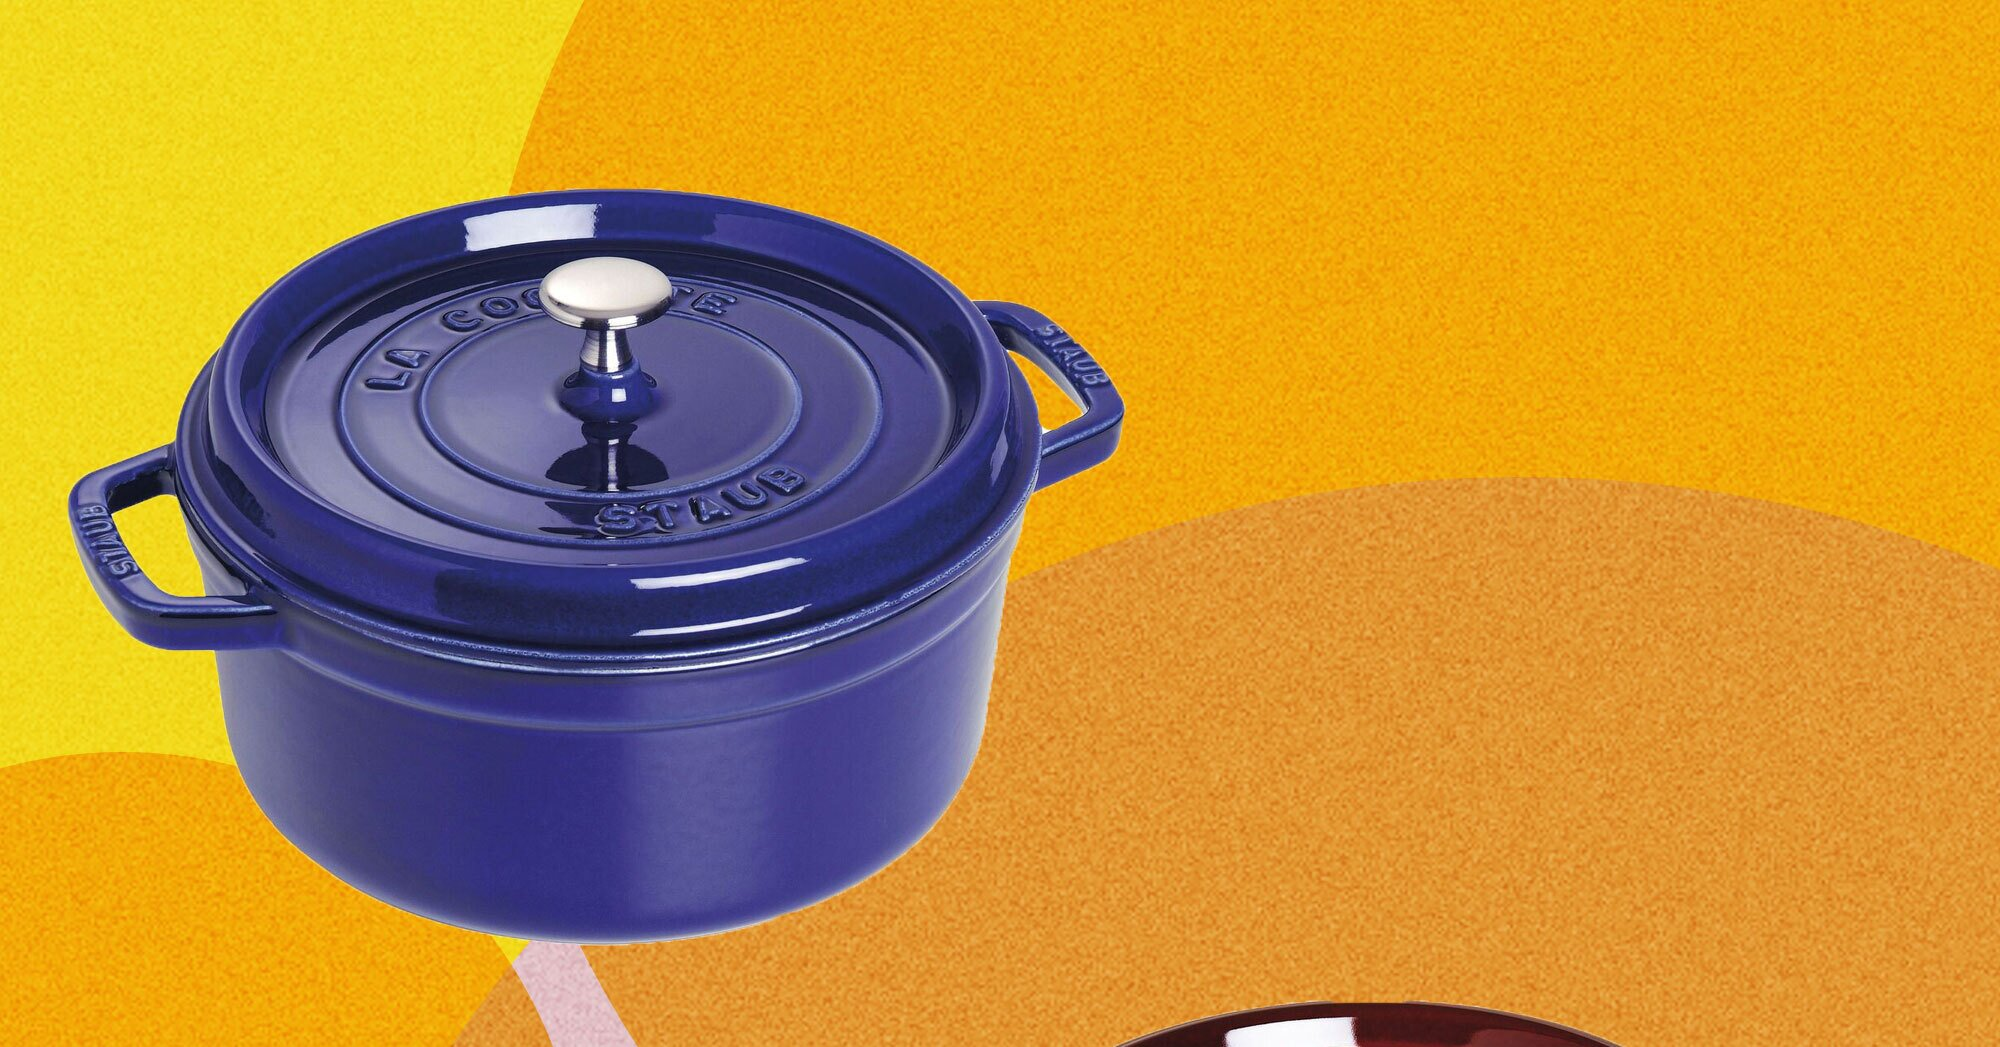 Looking for a New Dutch Oven? This Popular One Is 77% Off in an Early Black Friday Sale